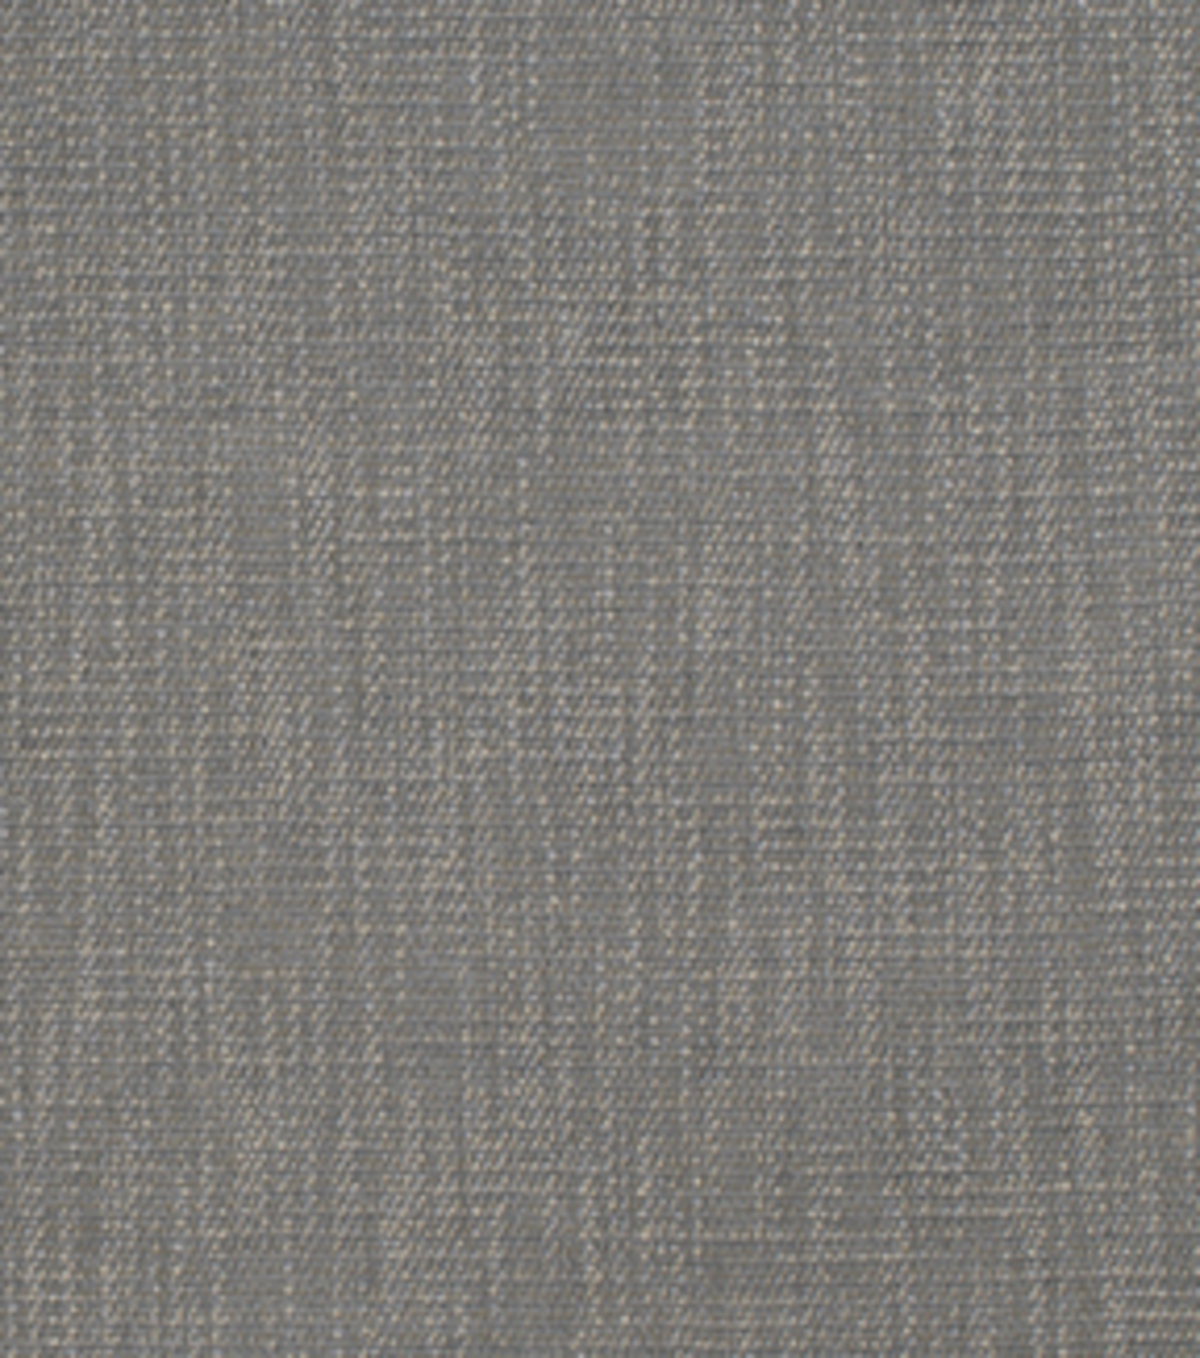 Home Decor 8\u0022x8\u0022 Fabric Swatch-Richloom Hogan Slate On Gray